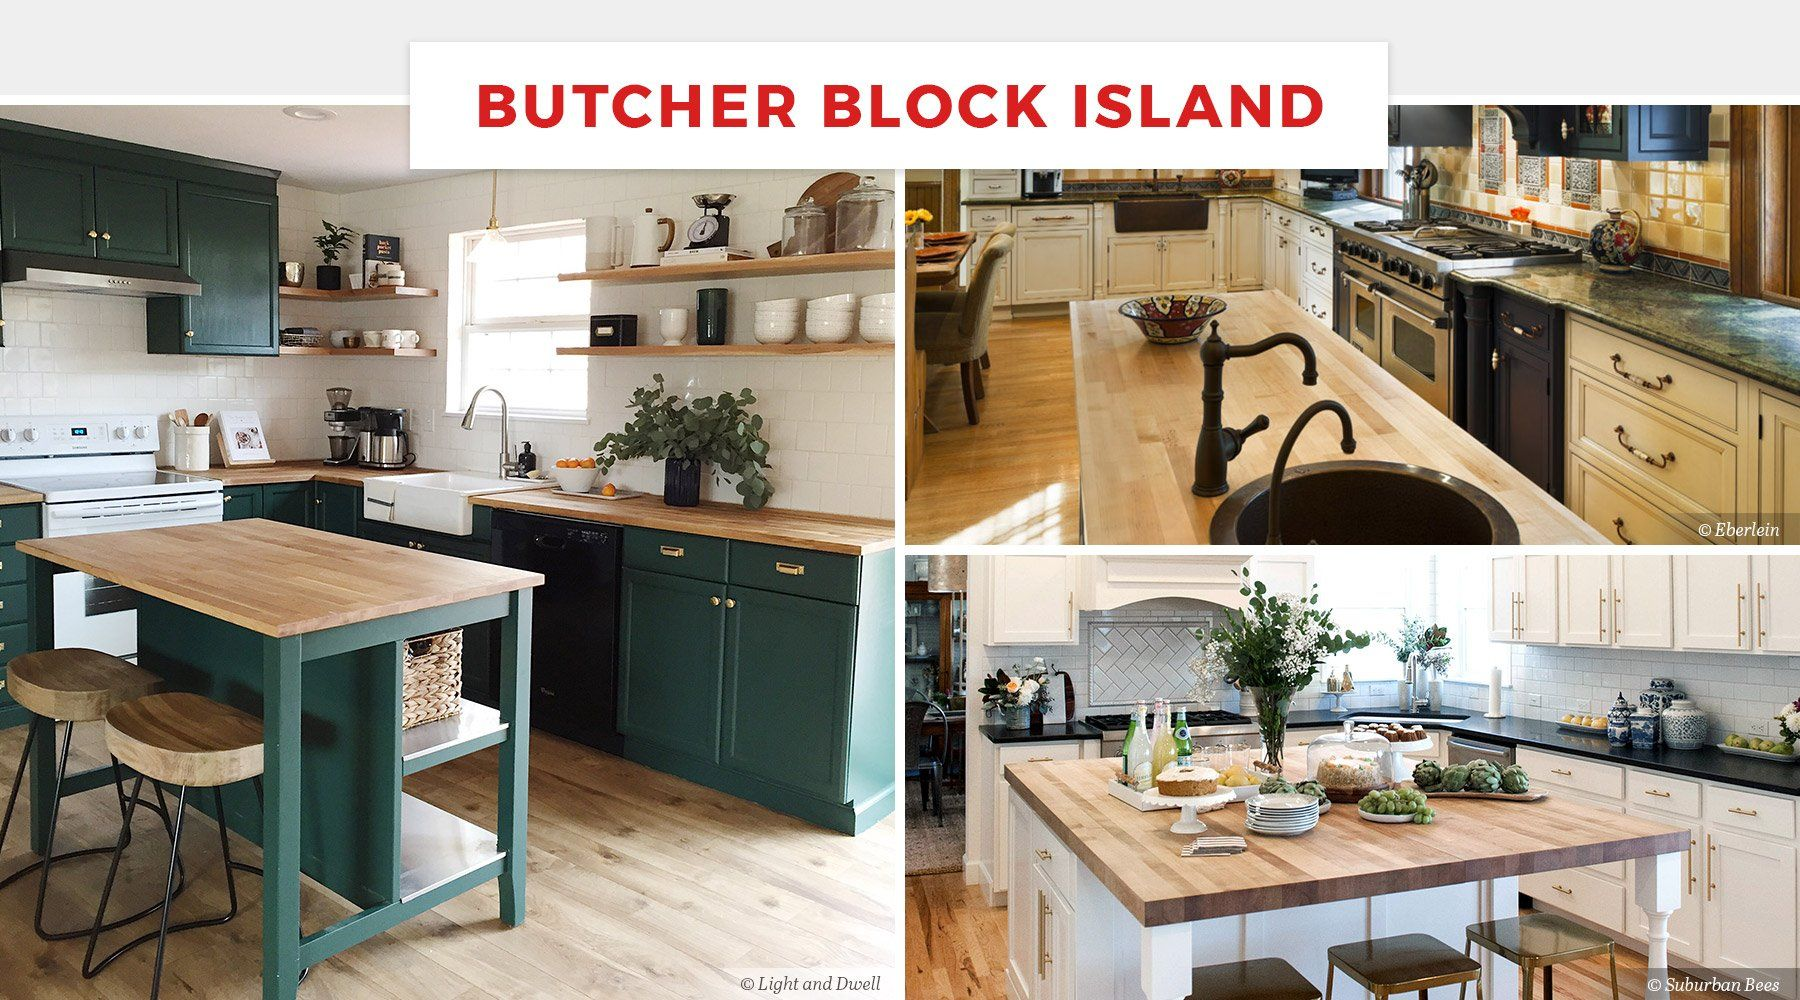 Butcher Block Kitchen Islands Save The Rest Of Your Countertops From Damage By Giving You A Separate Worke For Cutting Read On To Learn More About